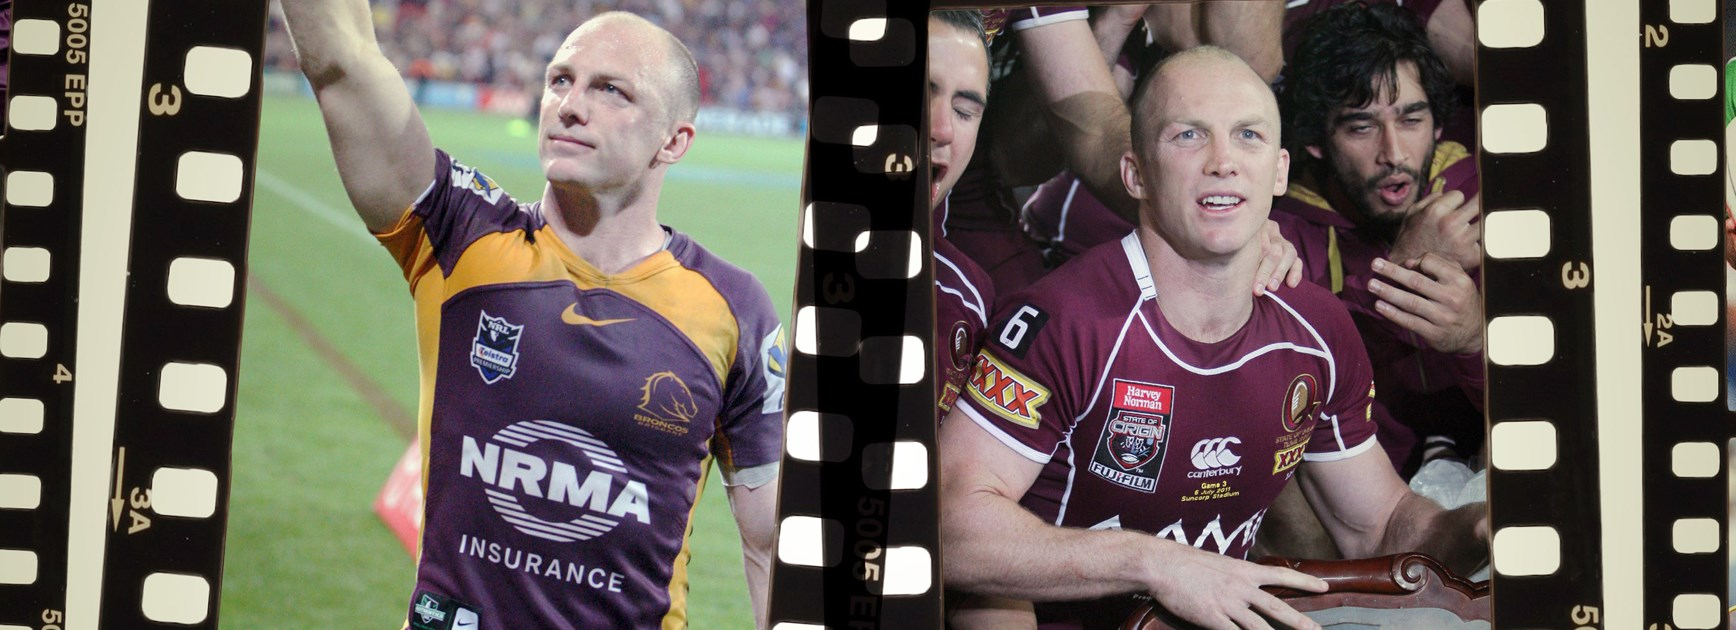 Lockyer edges Smith as best captain of past 30 years